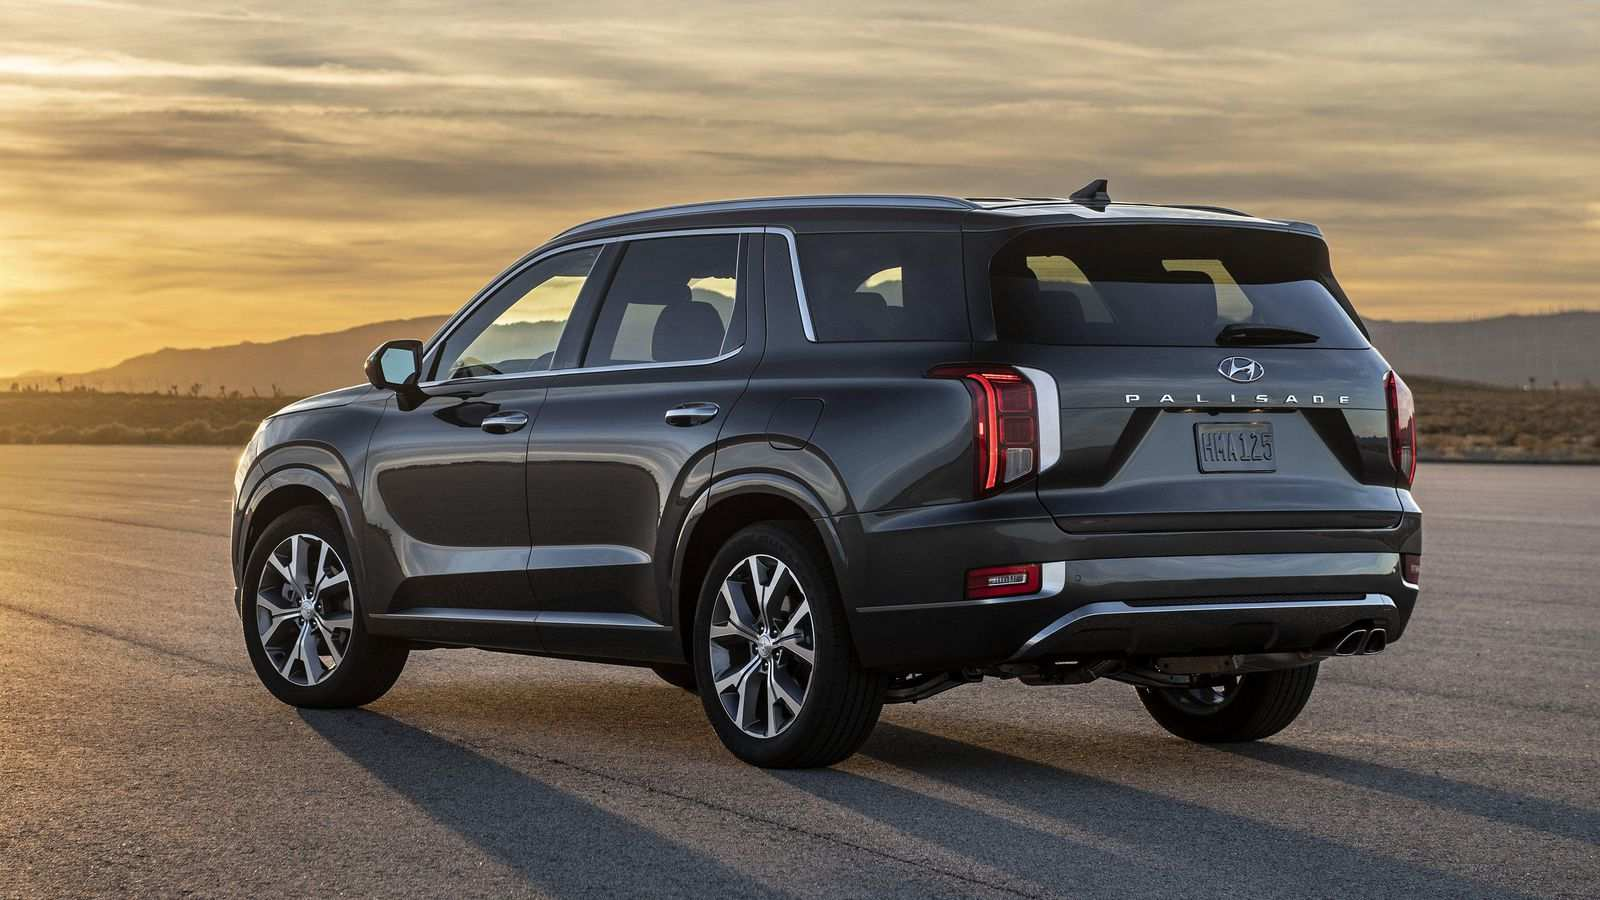 87 Concept of When Will The 2020 Hyundai Palisade Be Available Overview by When Will The 2020 Hyundai Palisade Be Available